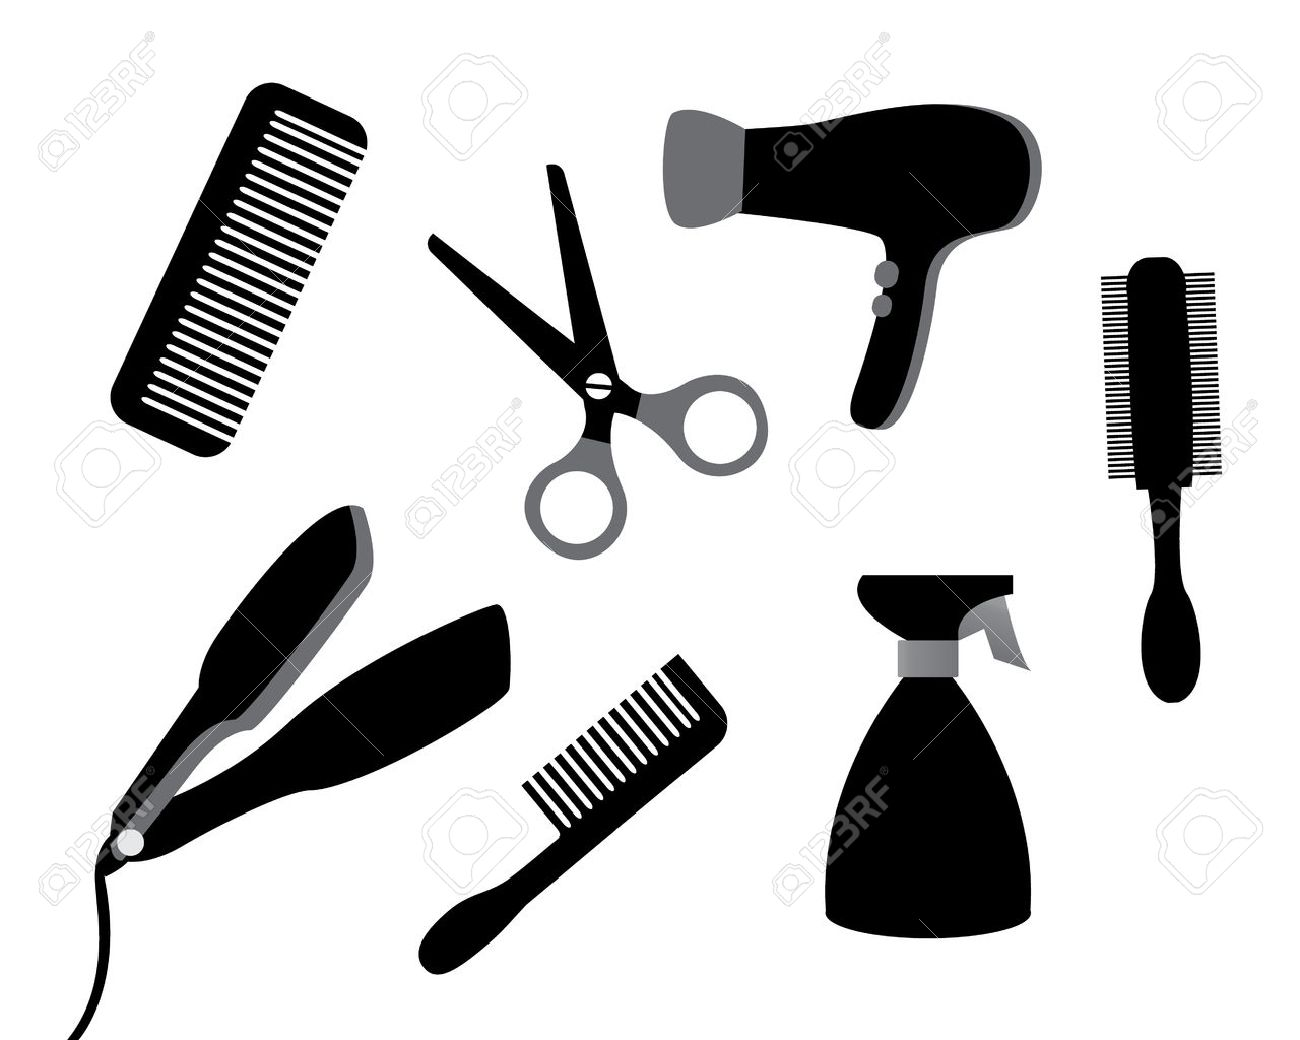 set of different tools for hair care on a white background.